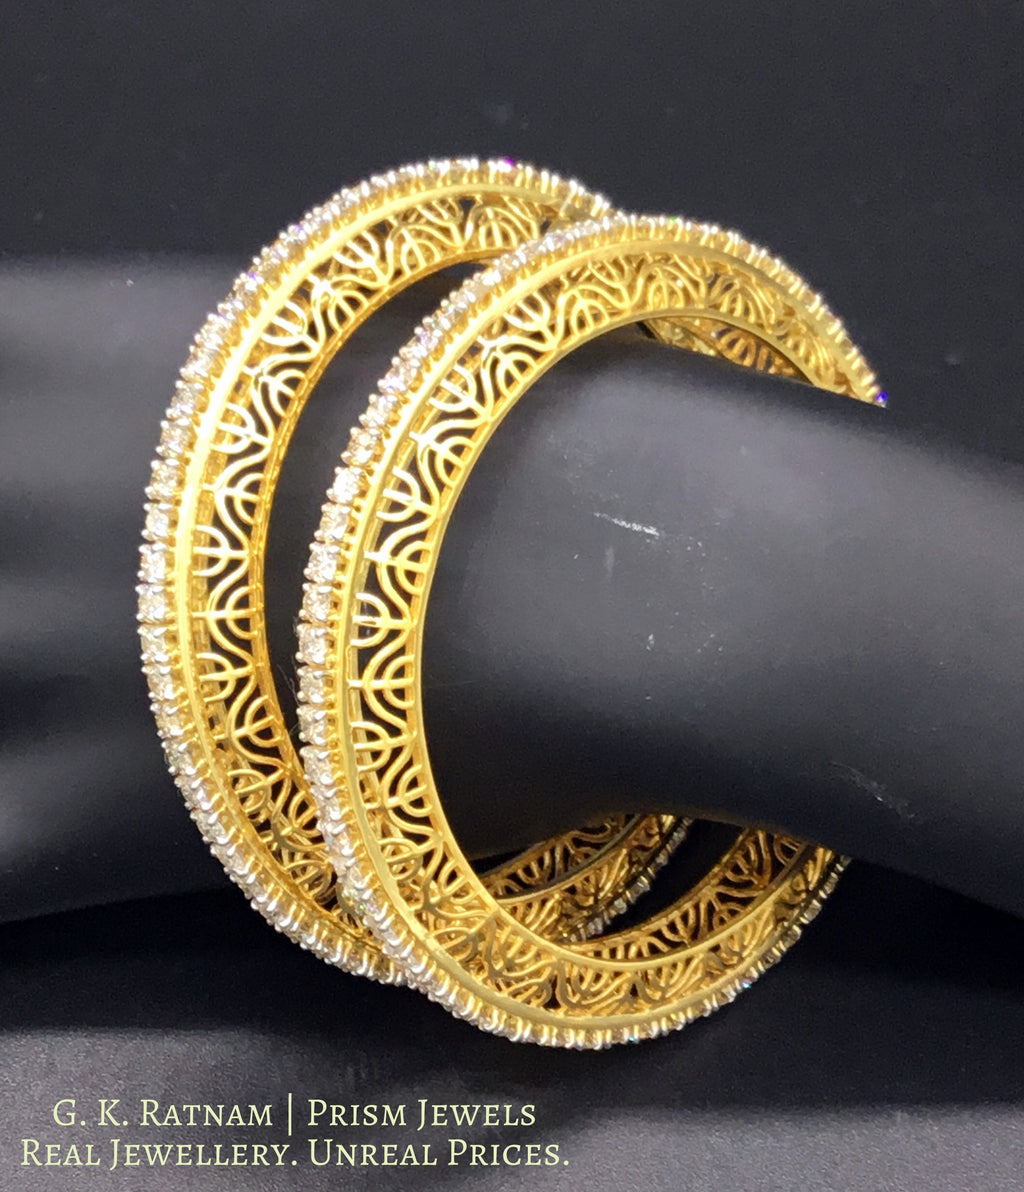 18k Gold and Diamond Bangle Pair with 12 cent diamonds - G. K. Ratnam